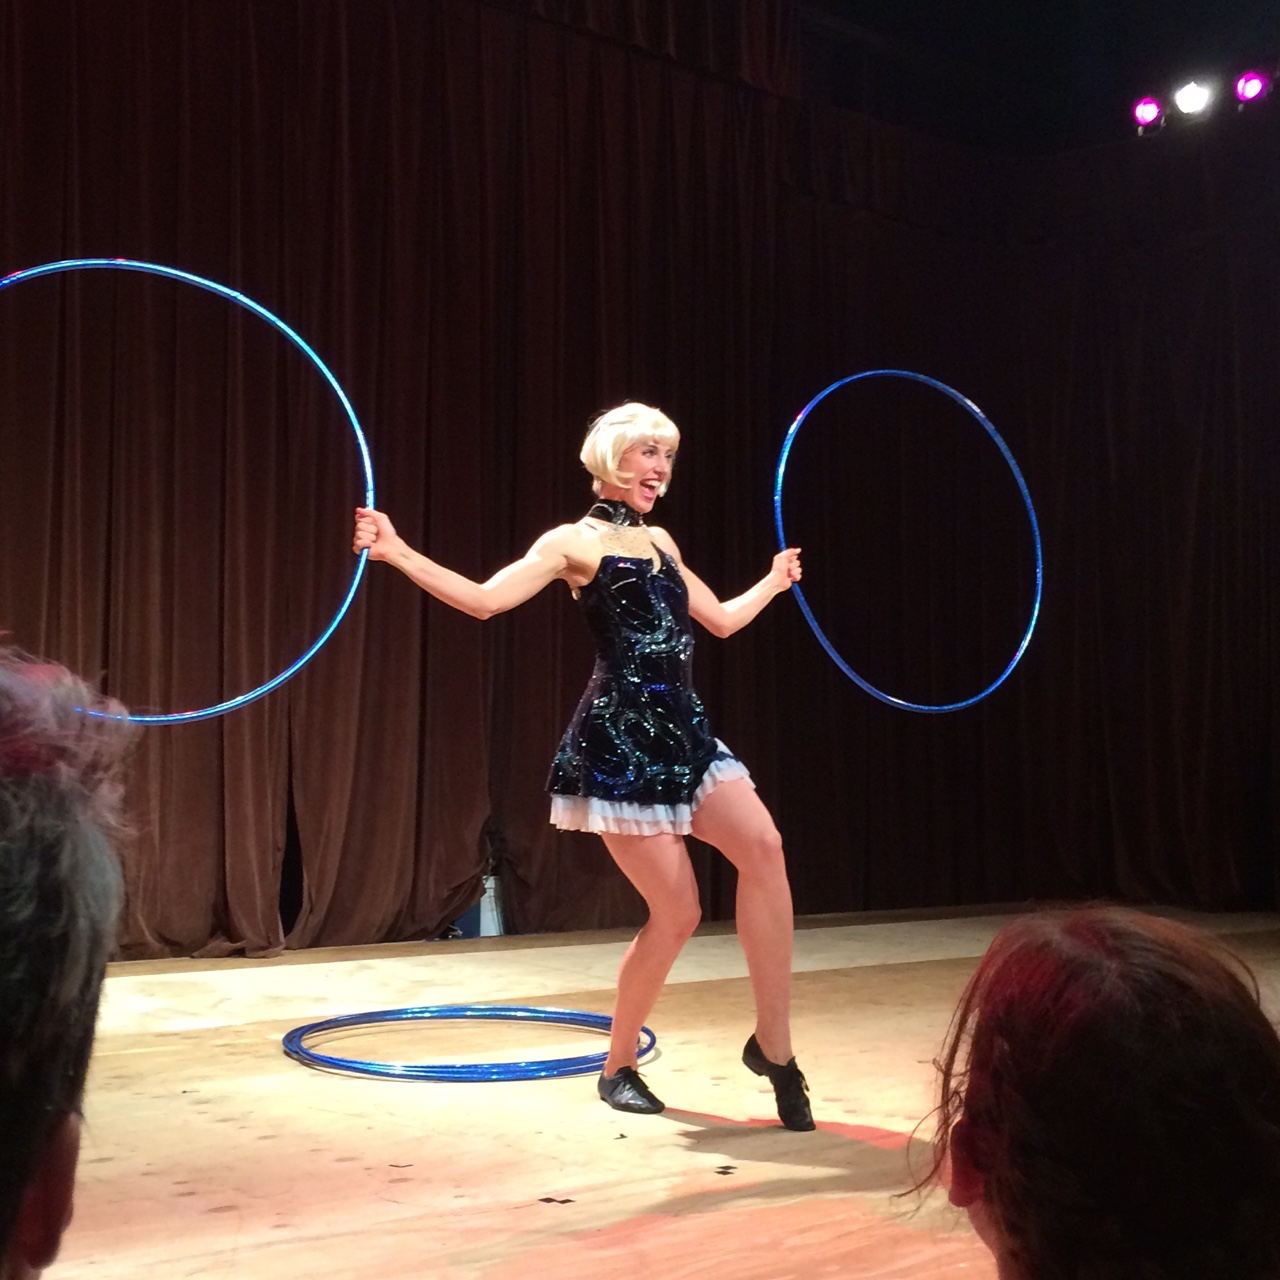 Performance at MCF hula hoops low res.JPG